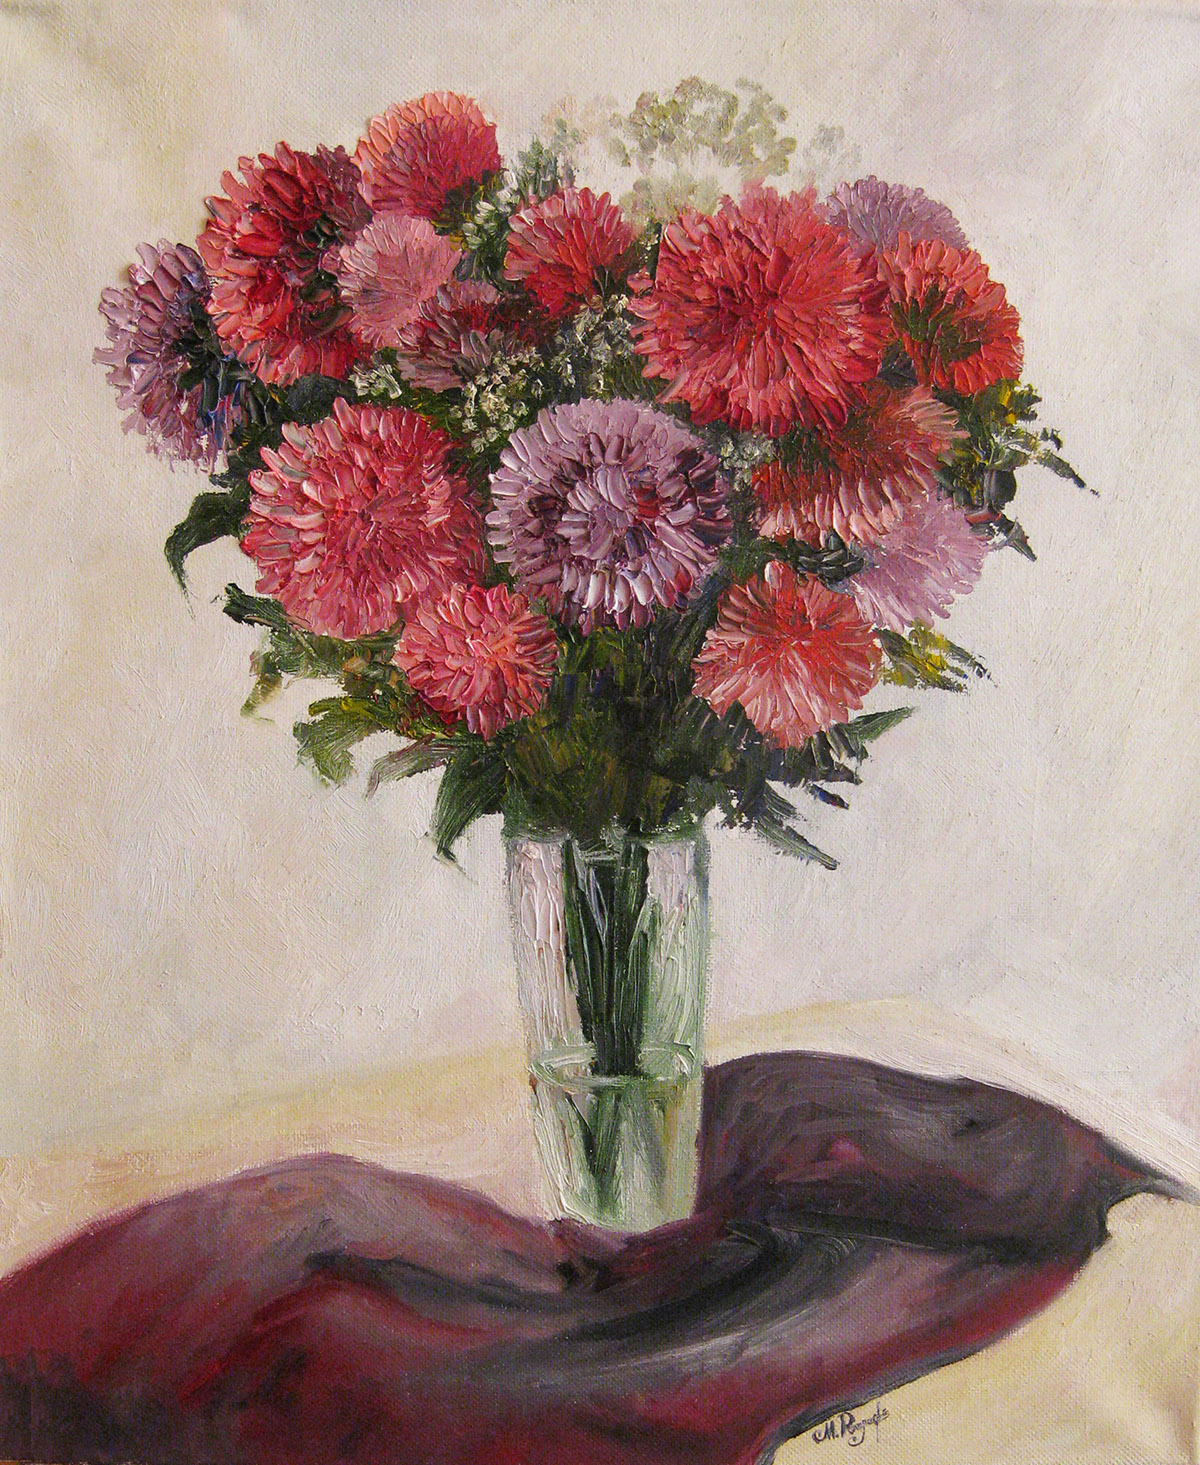 Asters in a vase. Autumn mood